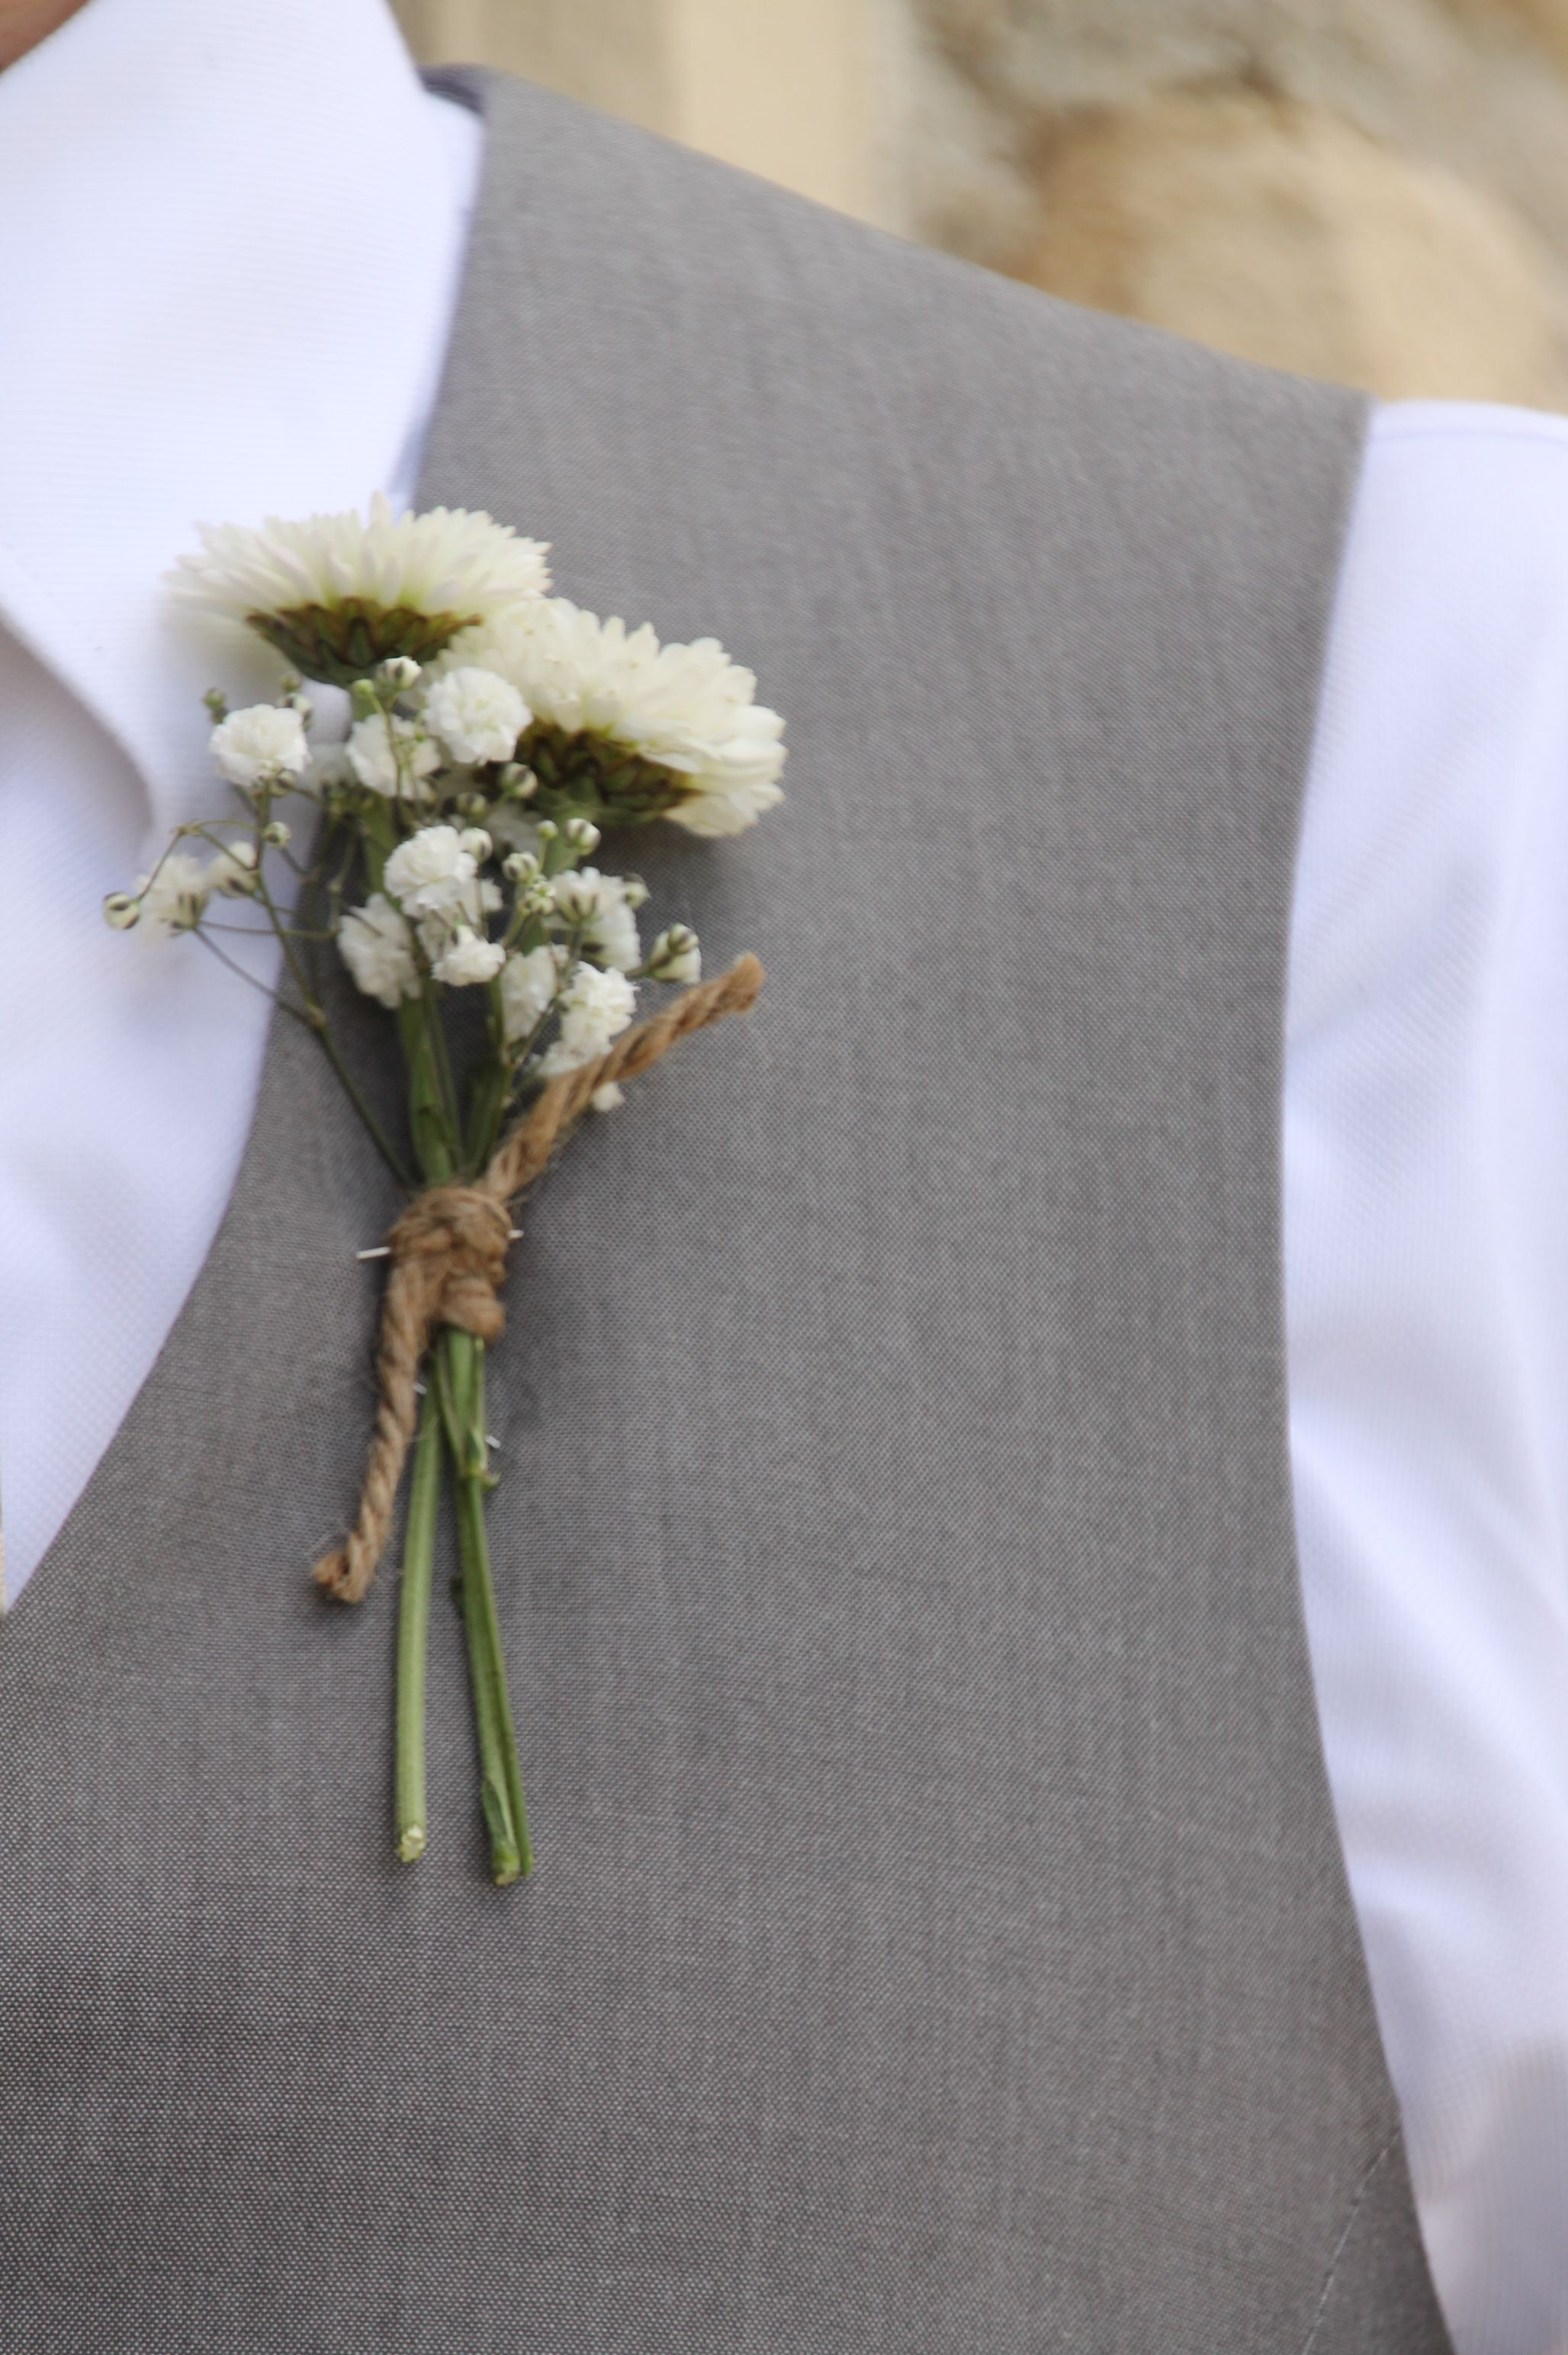 Country farm wedding boutonniere with white button mums. Created by Judith Marie from Lake Country Wisconsin.